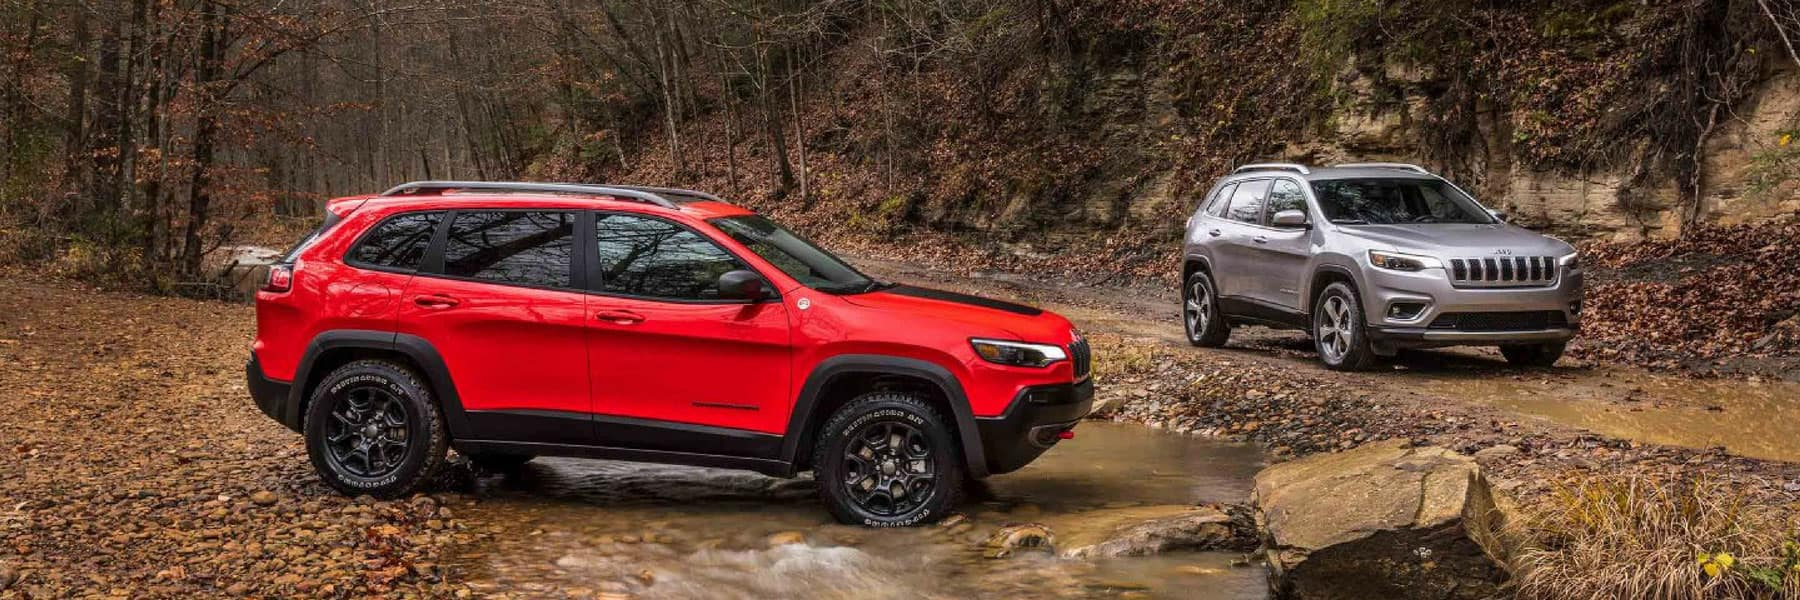 All-New 2019 Jeep Cherokee near Carmel, IN